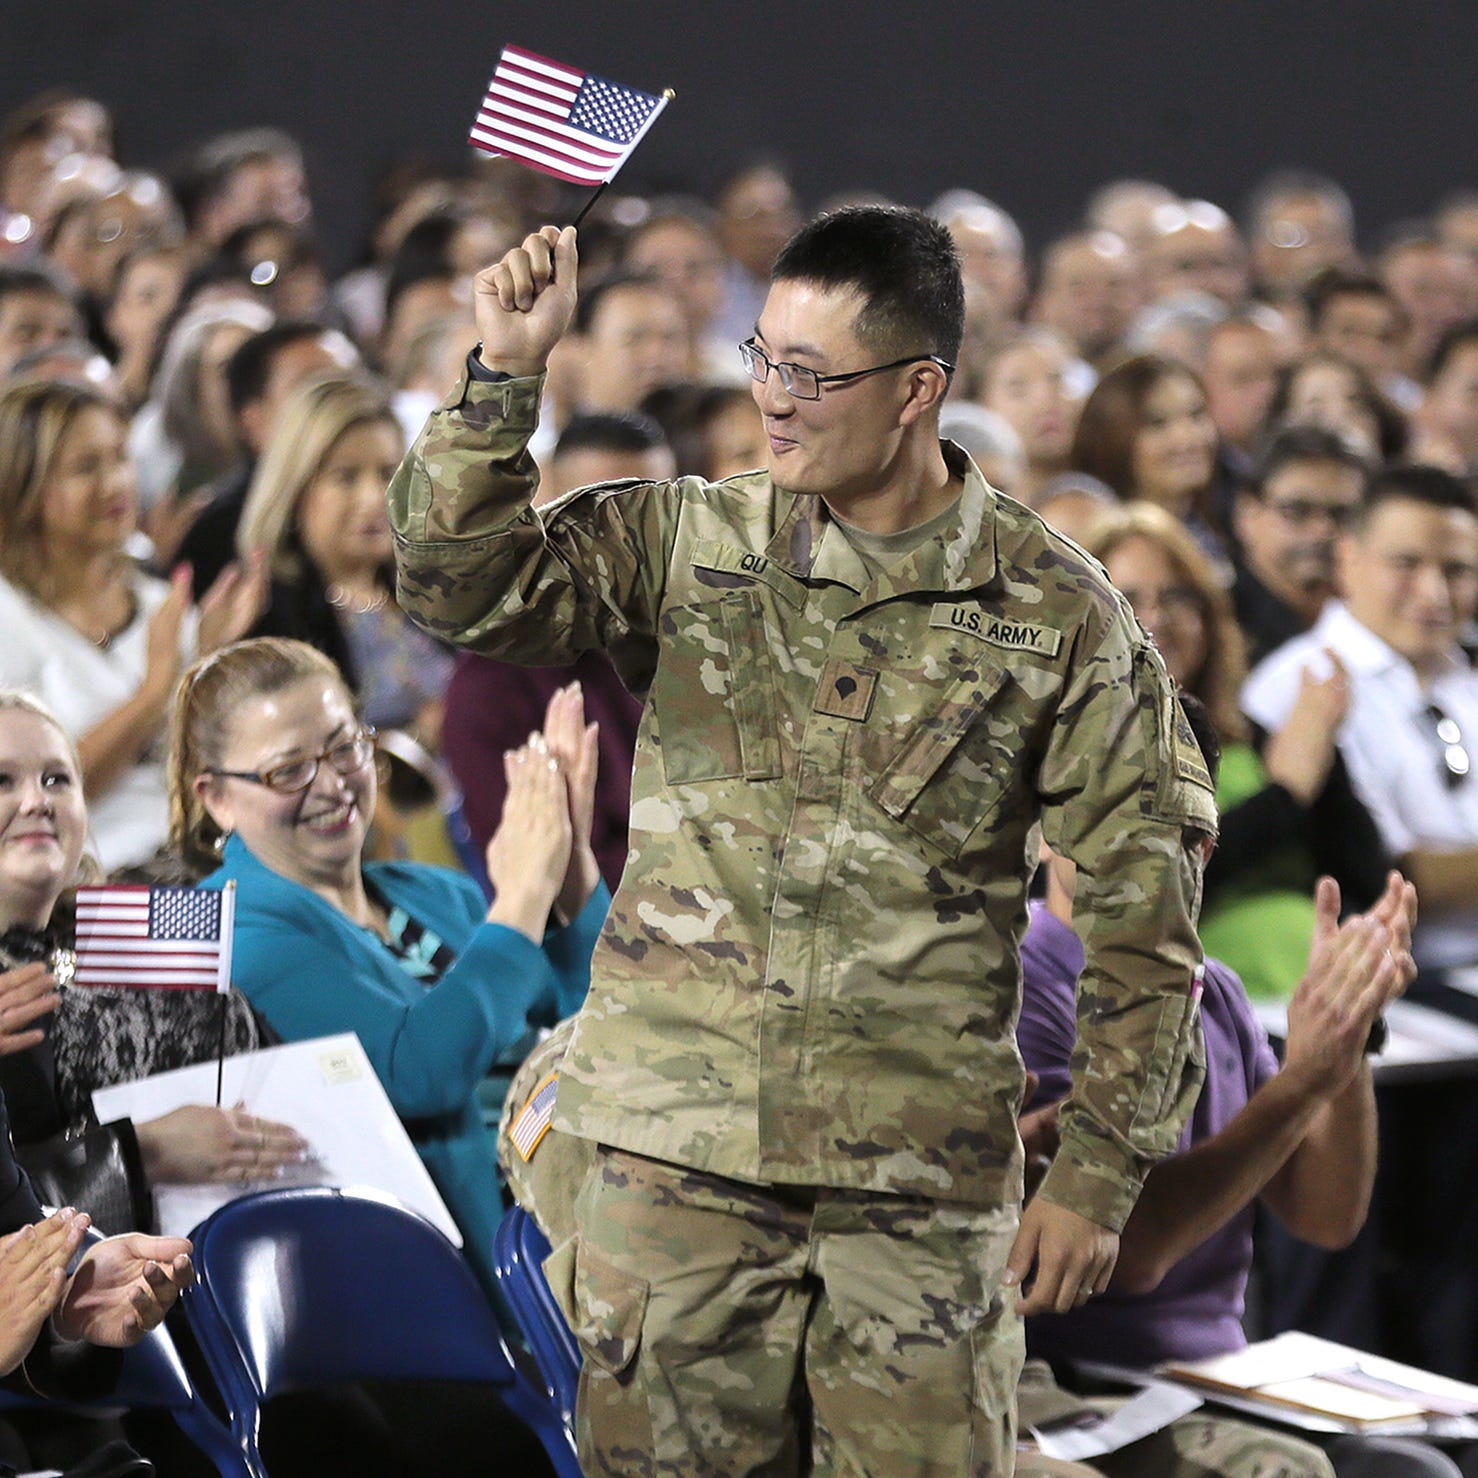 More than 700 immigrants become U.S. citizens at El Paso County Coliseum